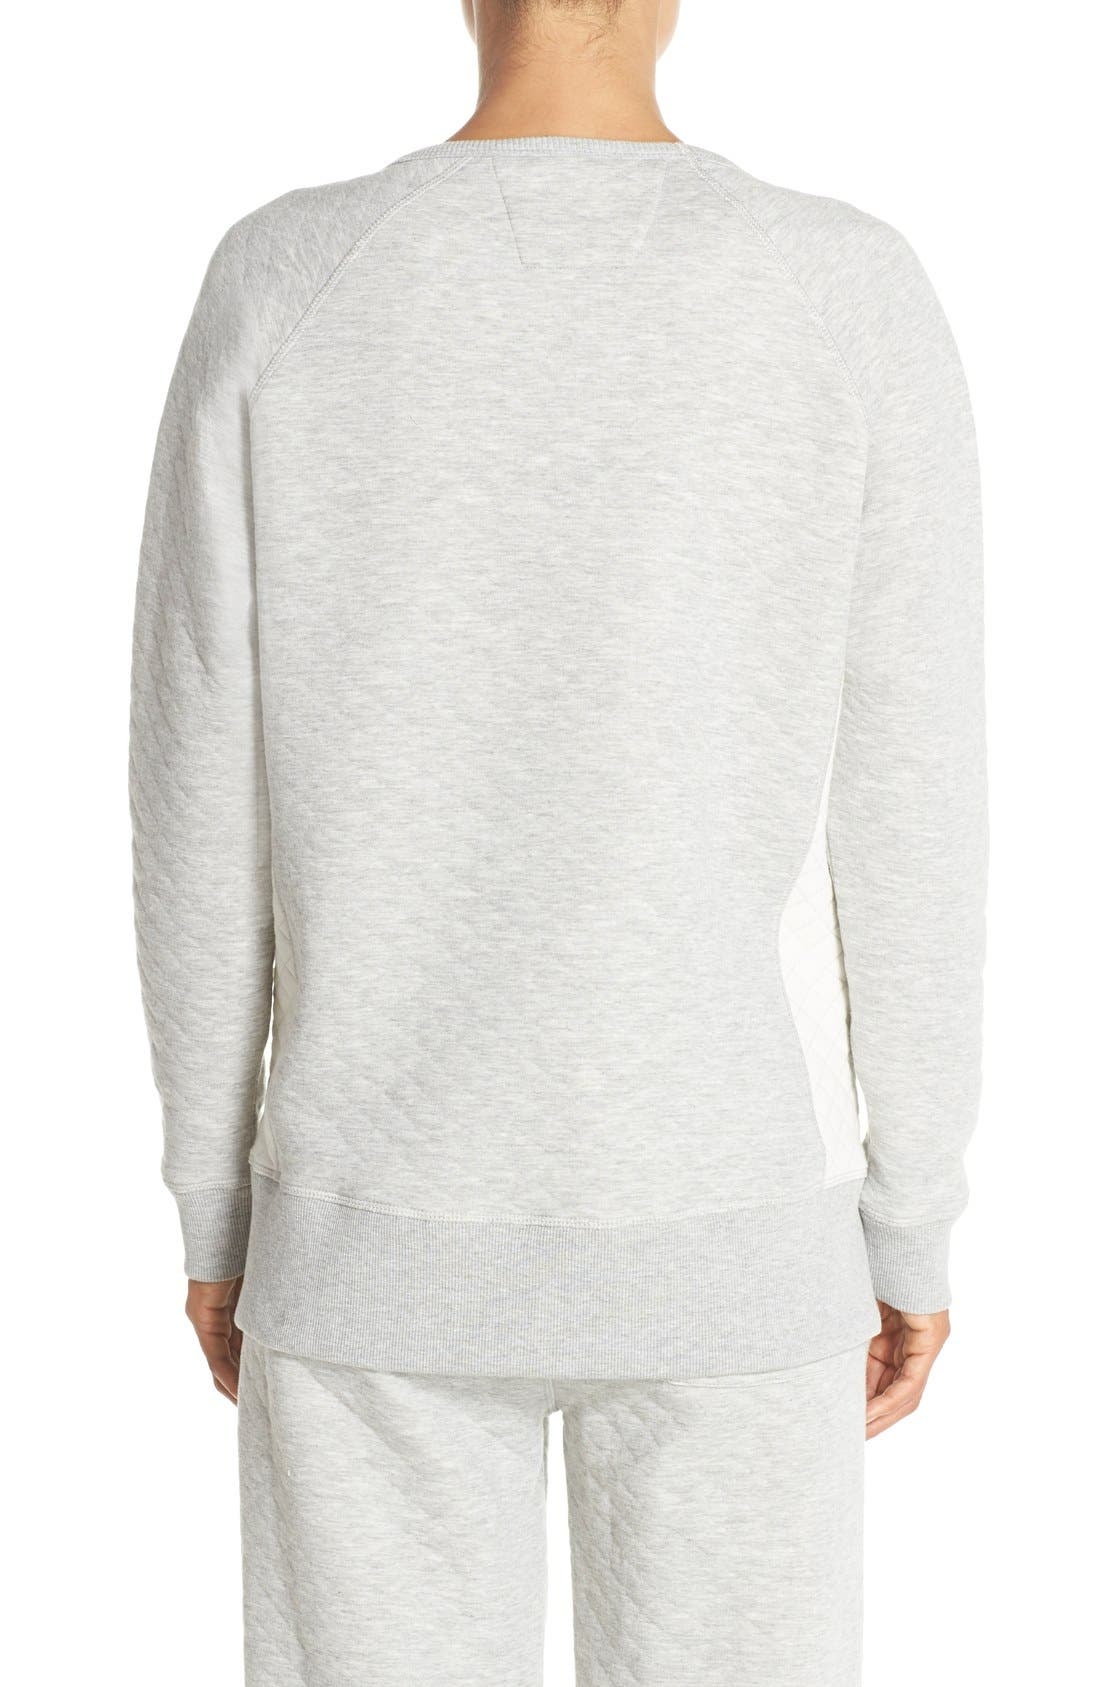 DANIEL BUCHLER,                             Quilted Cotton Sweatshirt,                             Alternate thumbnail 5, color,                             020